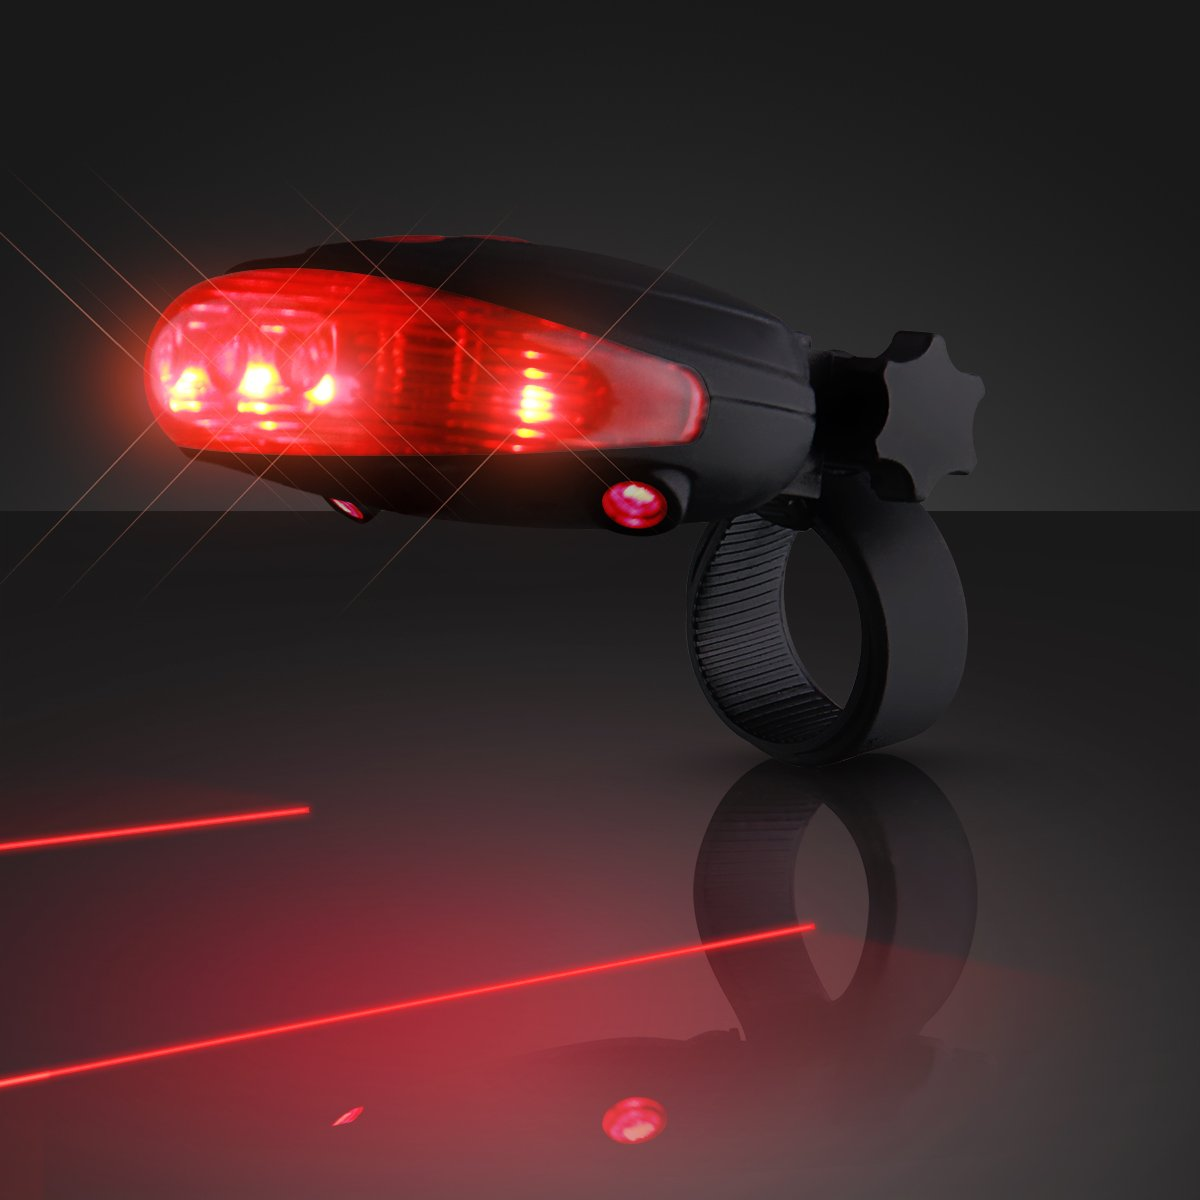 Red Laser Tail Light with Bike Lane Projection (Set of 12)